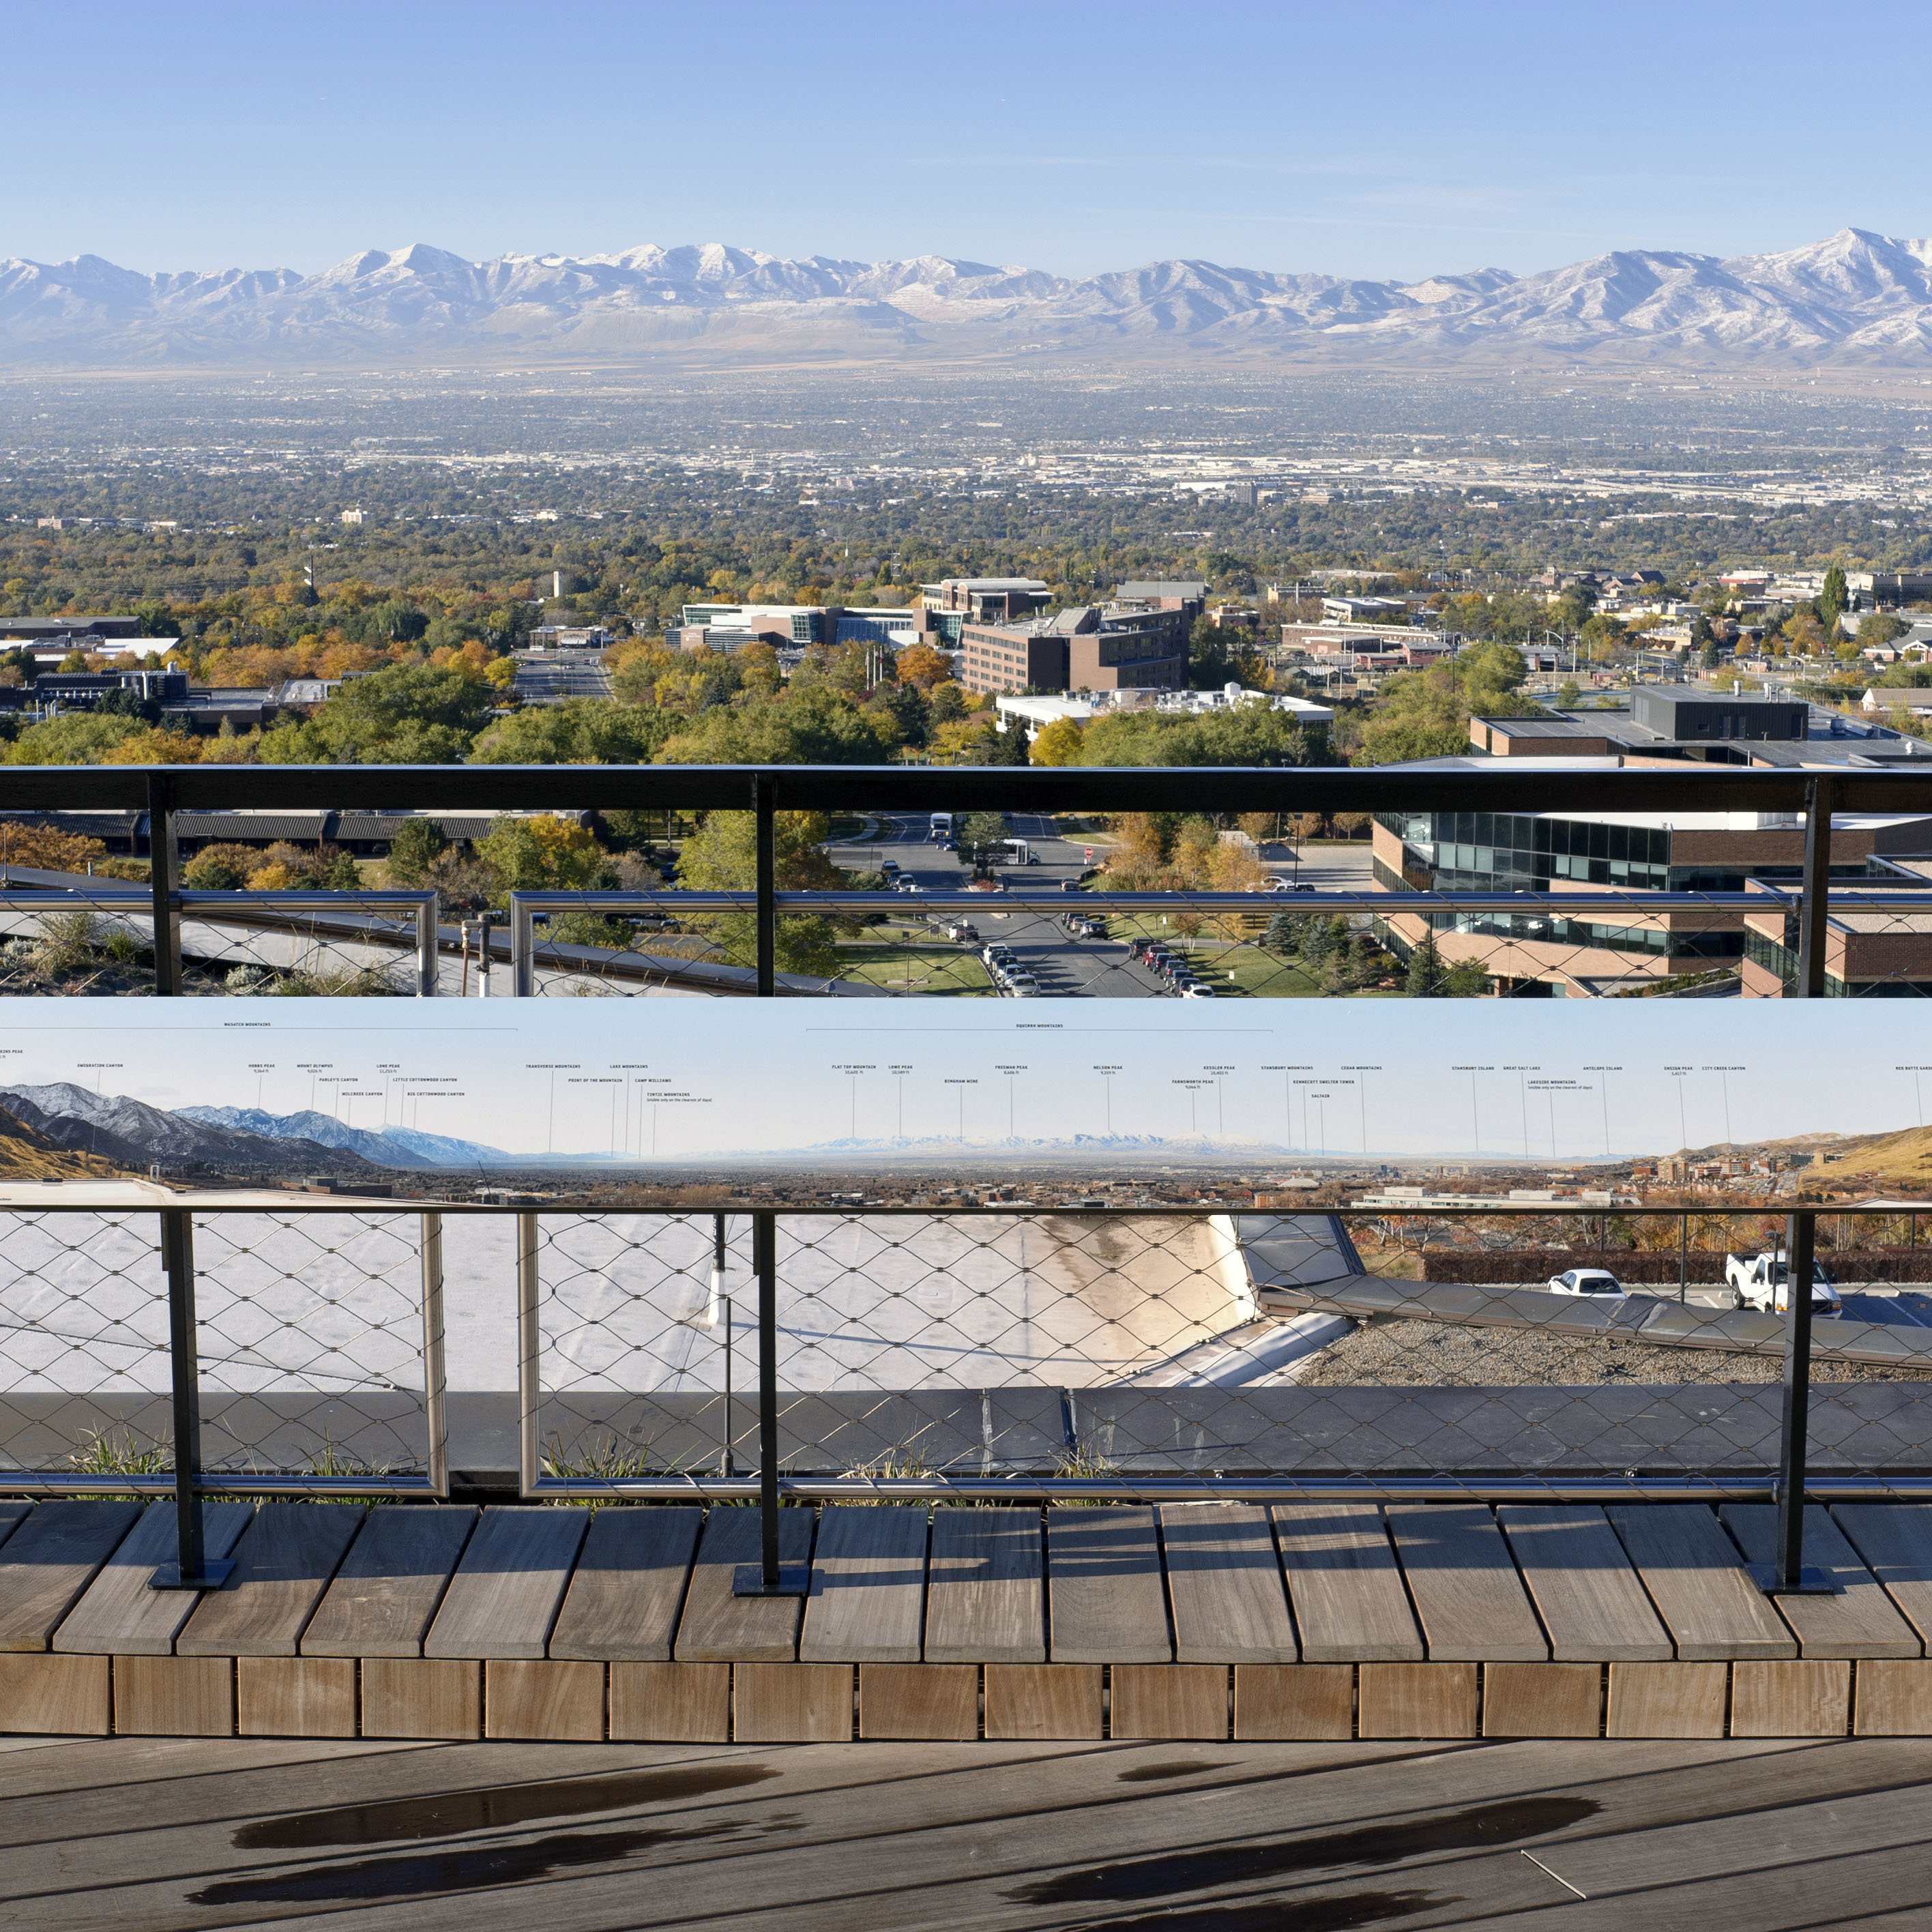 View of the Salt Lake Valley from the Sky Terrace at NHMU